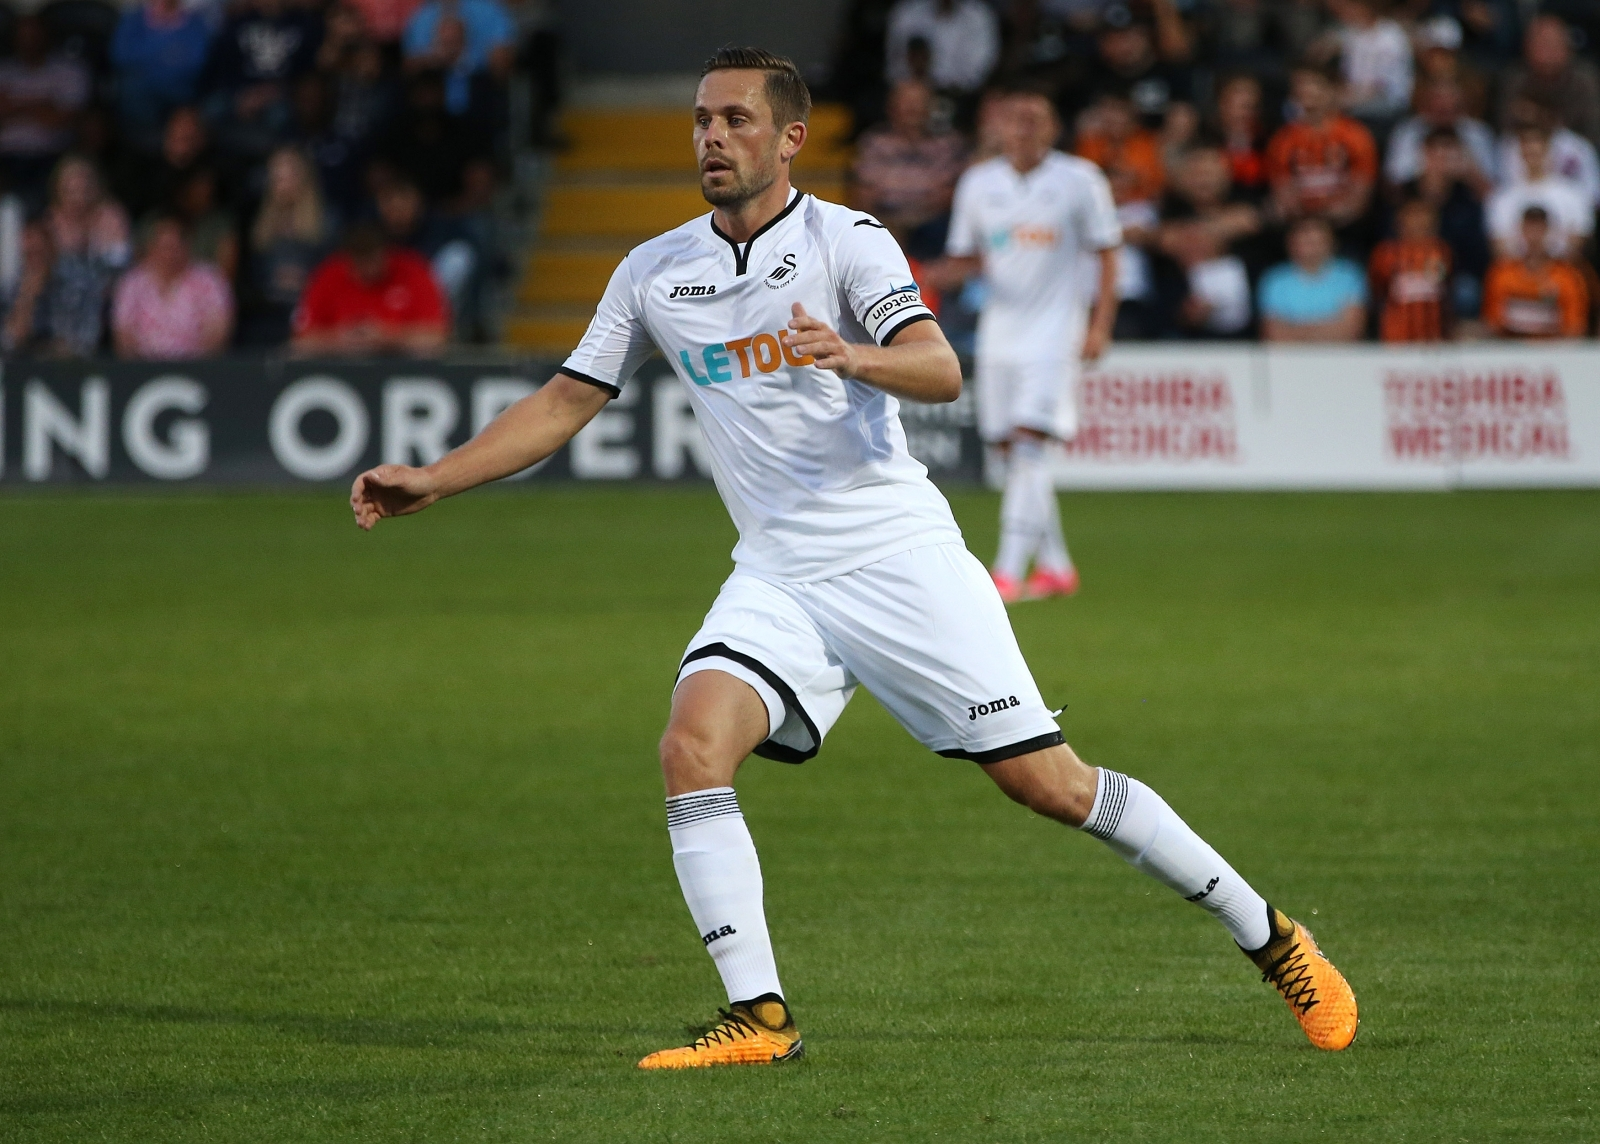 Swansea star Sigurdsson heading to Everton